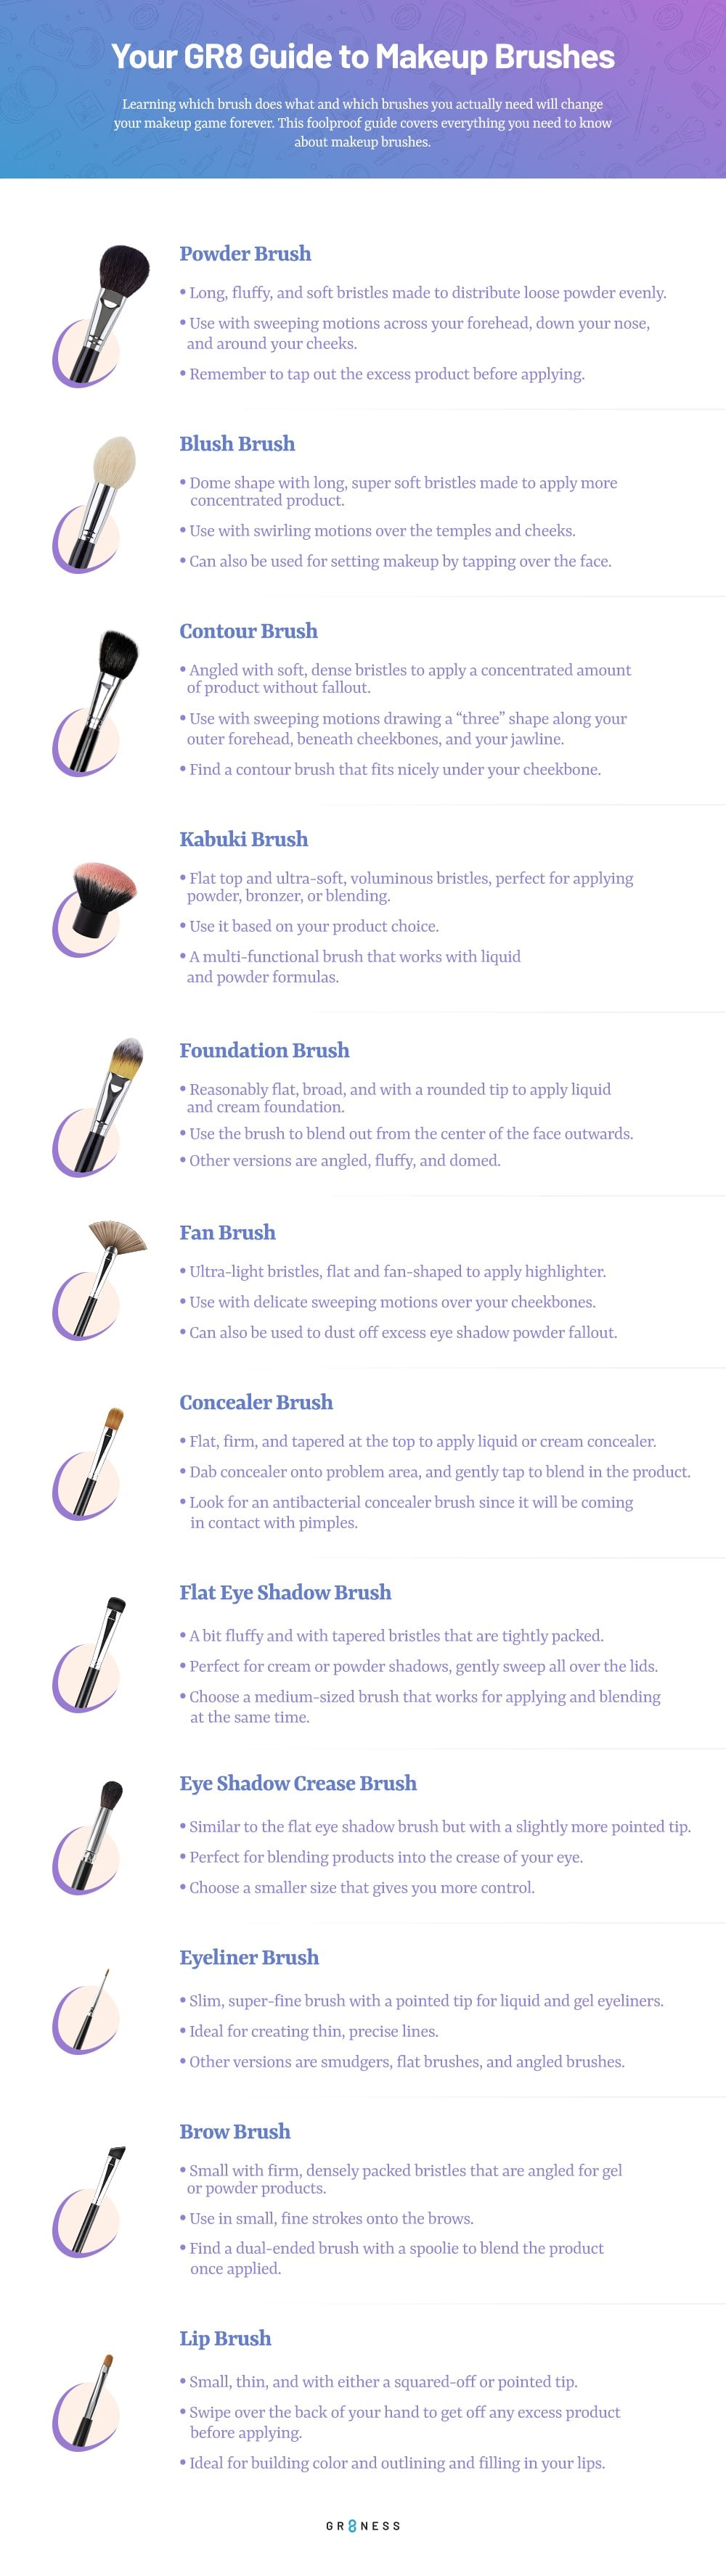 Step by step guide for choosing the right makeup brush